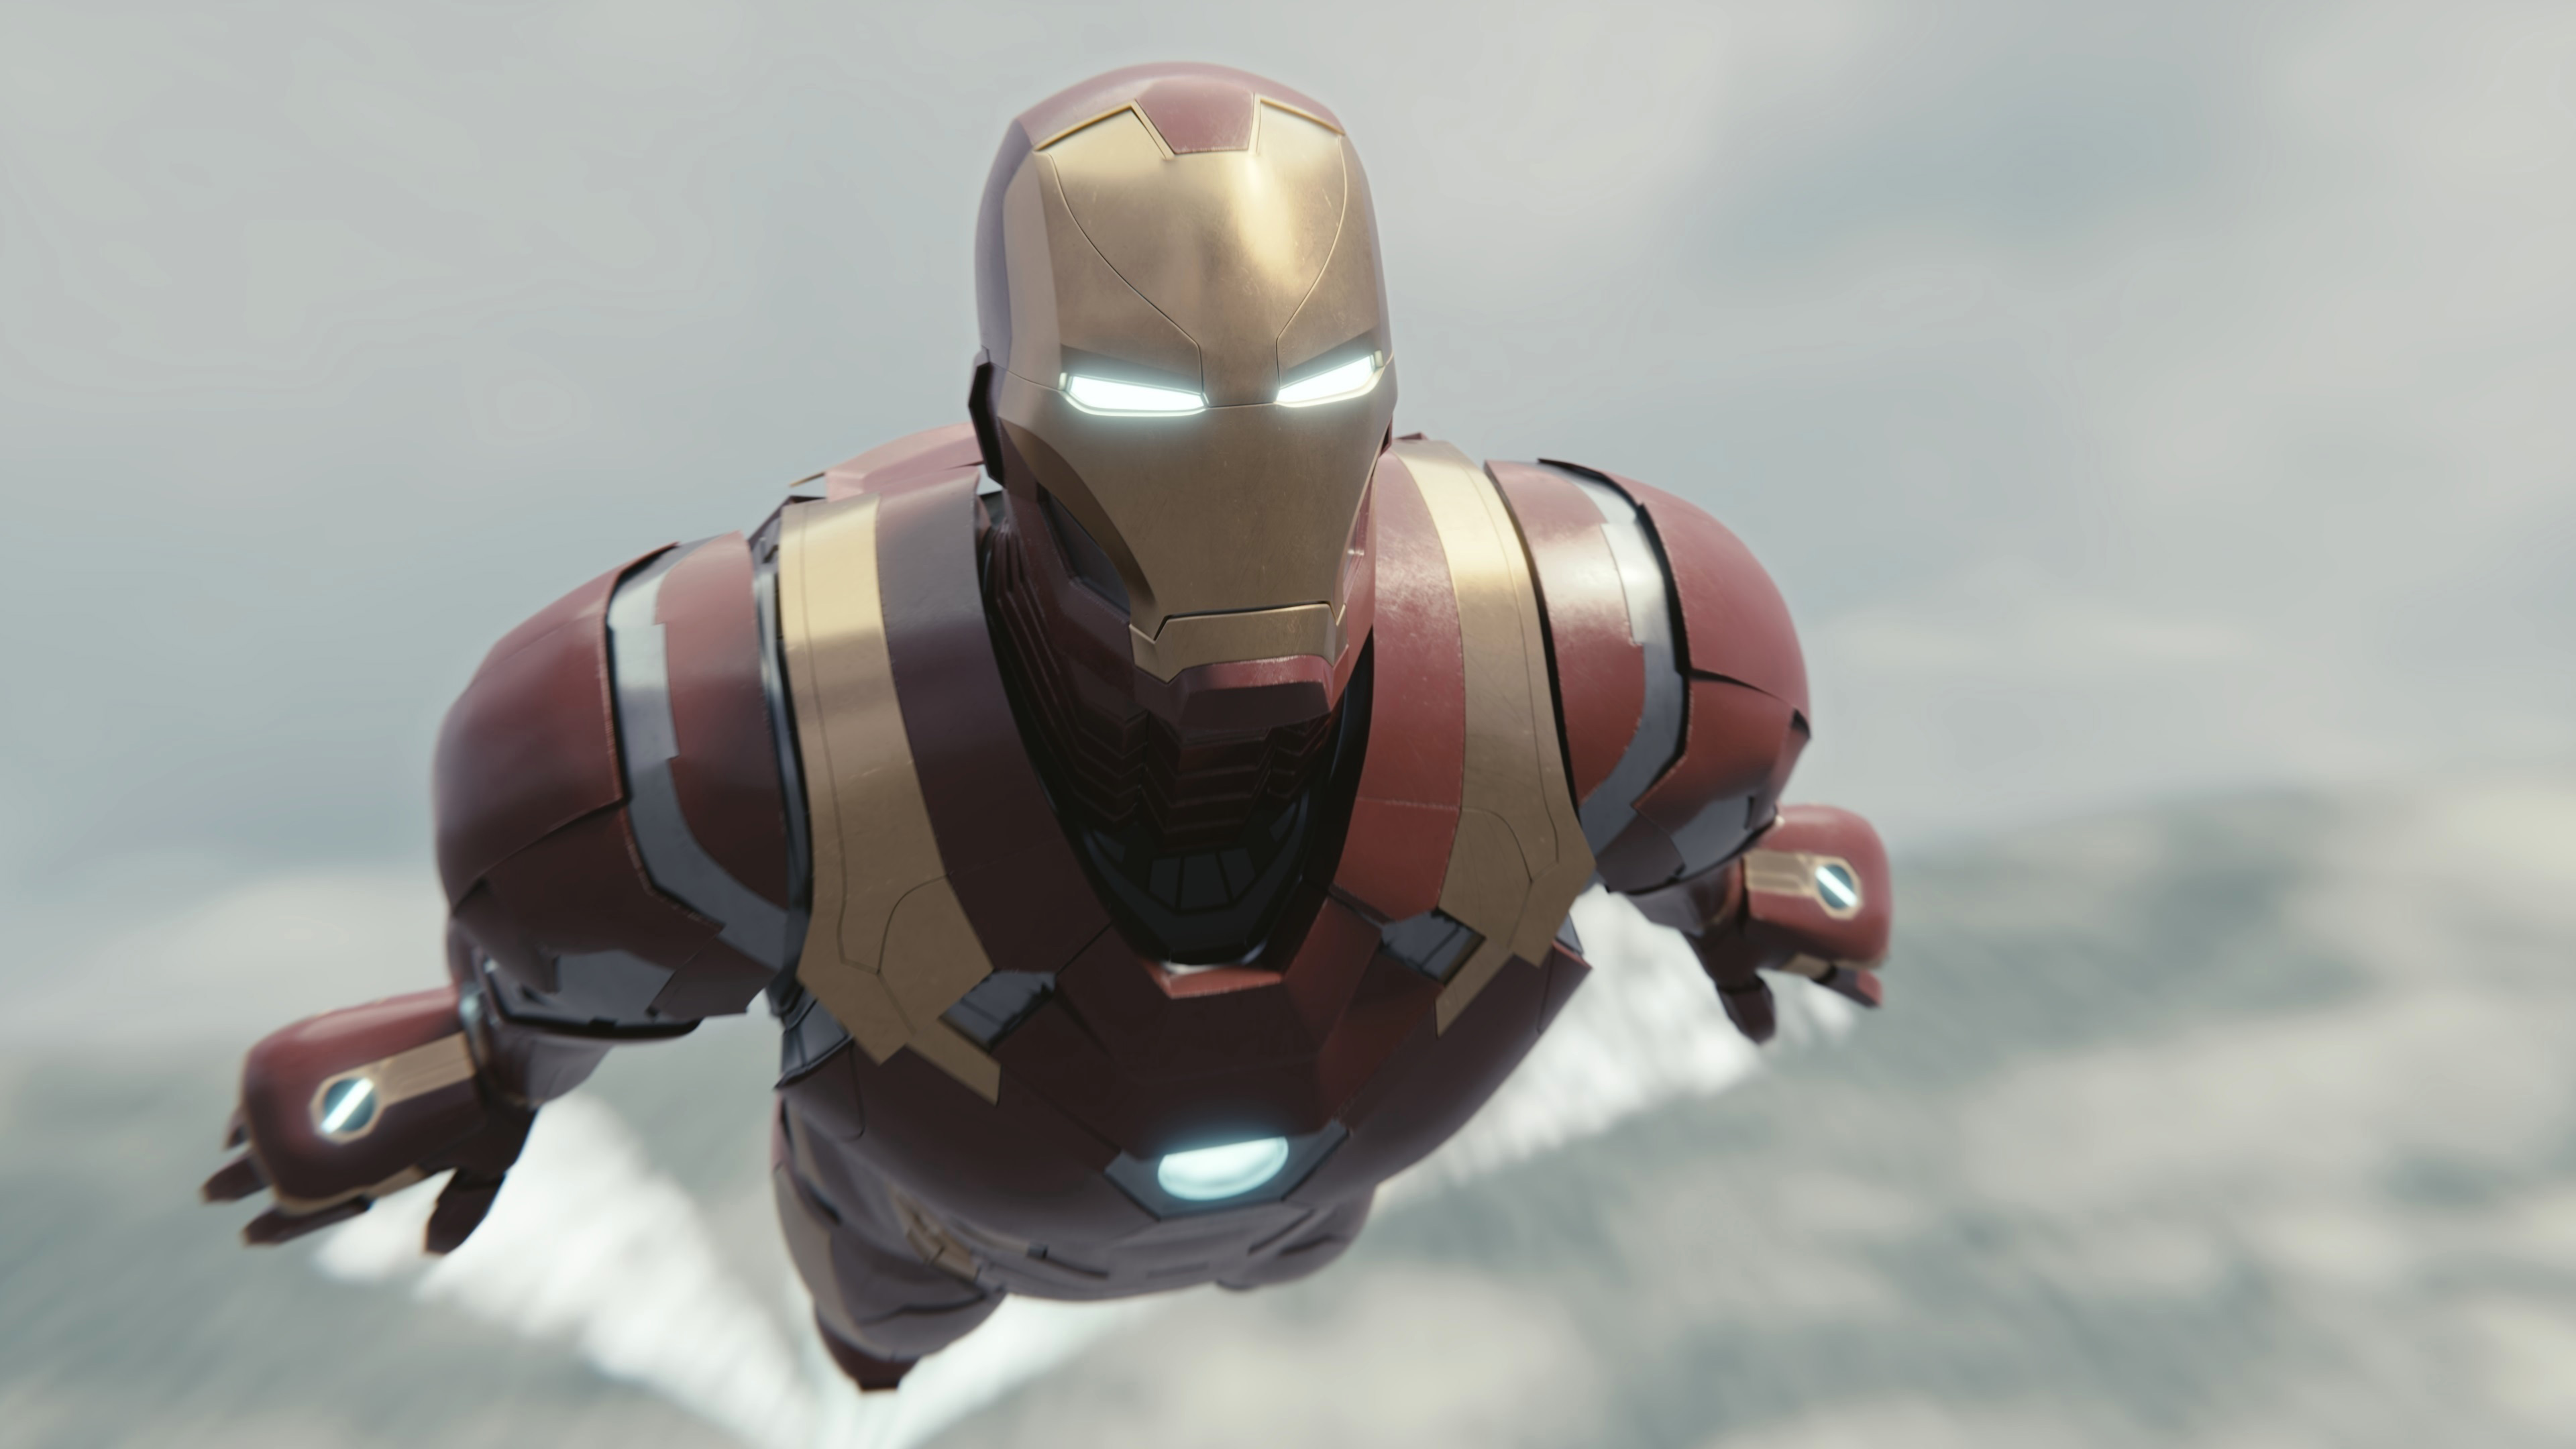 iron man 4k digital art 1536522738 - Iron Man 4k Digital Art - superheroes wallpapers, iron man wallpapers, hd-wallpapers, digital art wallpapers, artwork wallpapers, artist wallpapers, 4k-wallpapers